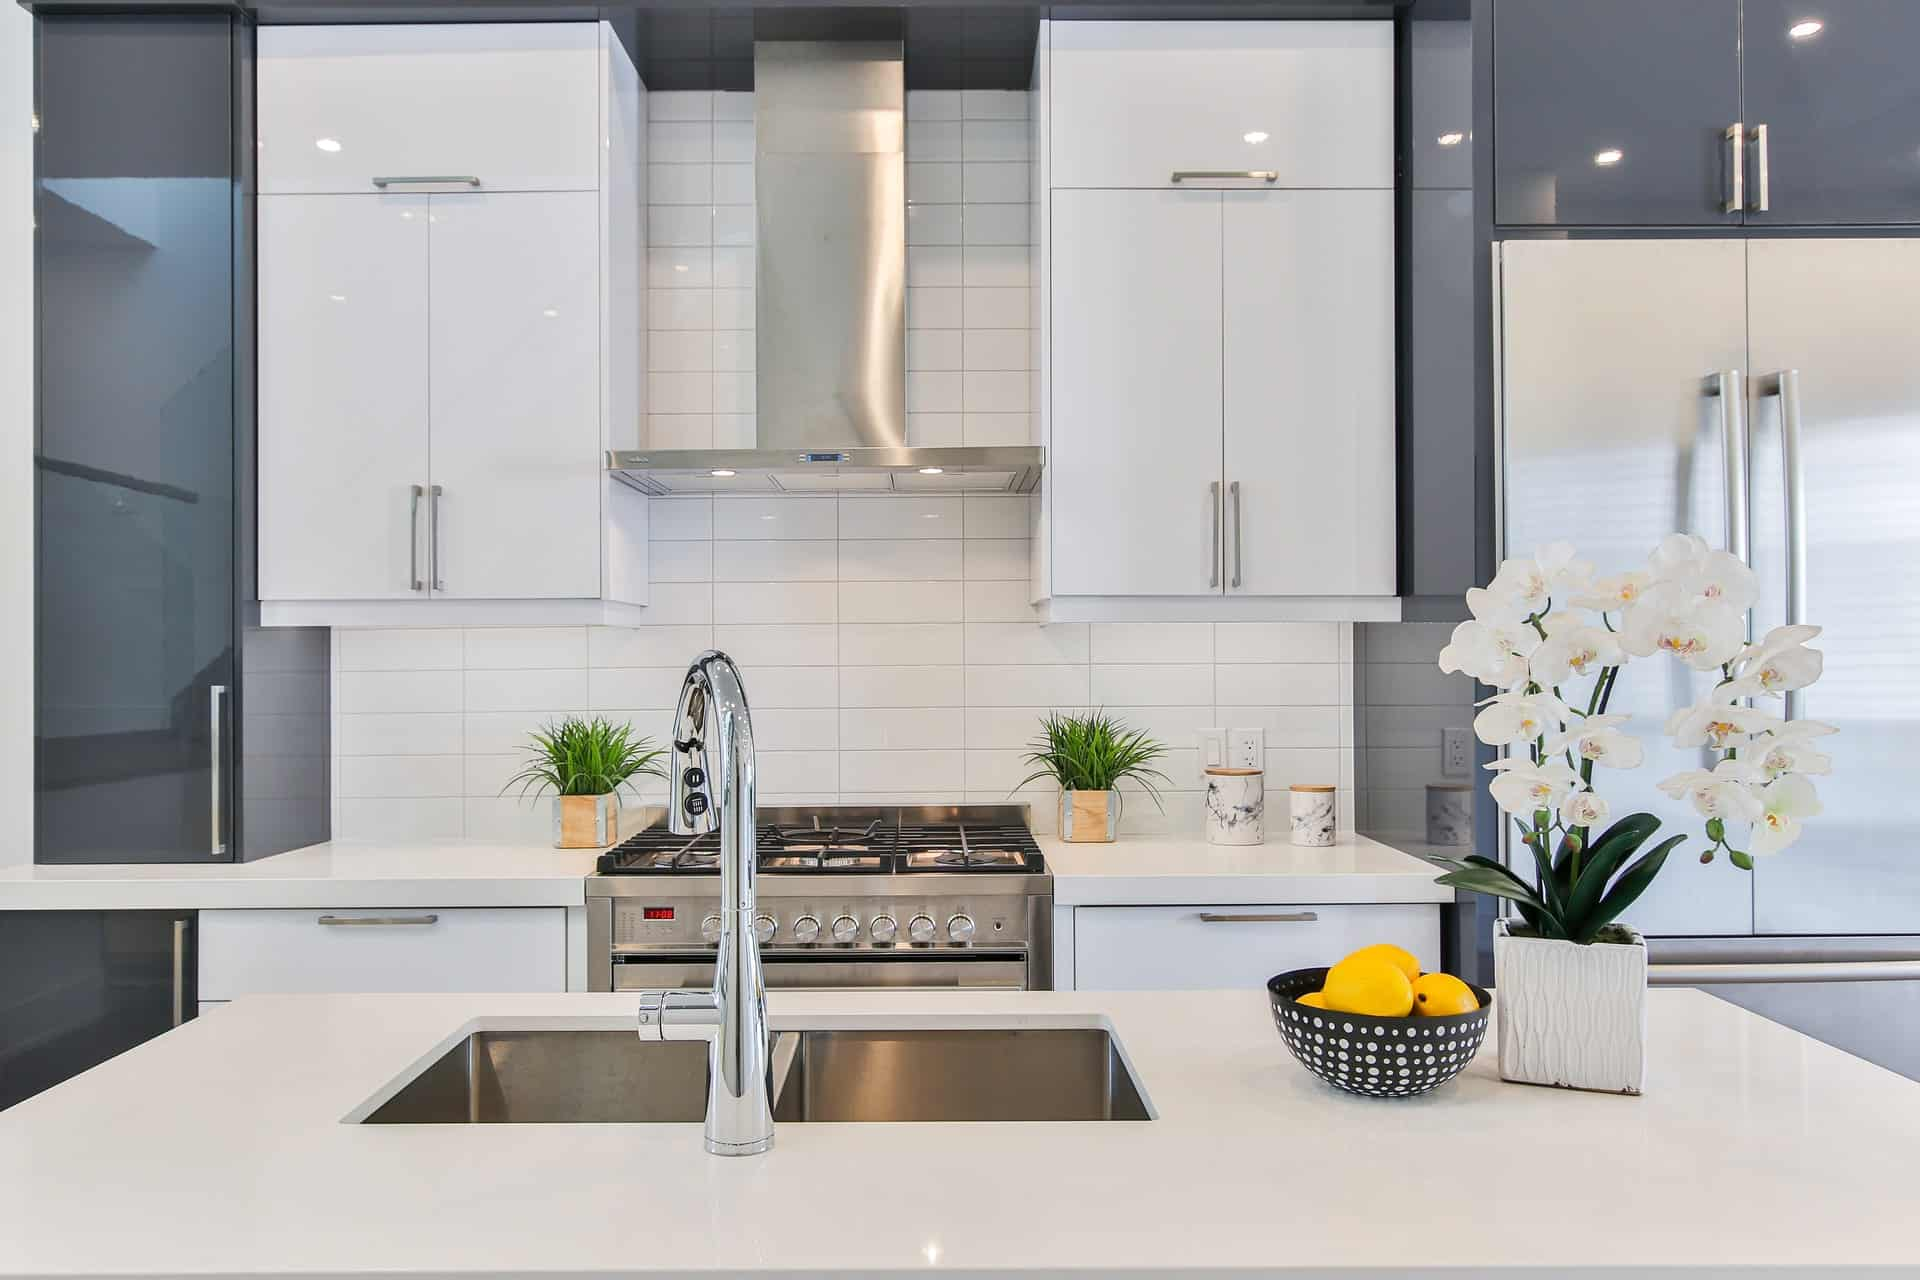 A delta kitchen faucet in a large white kitchen